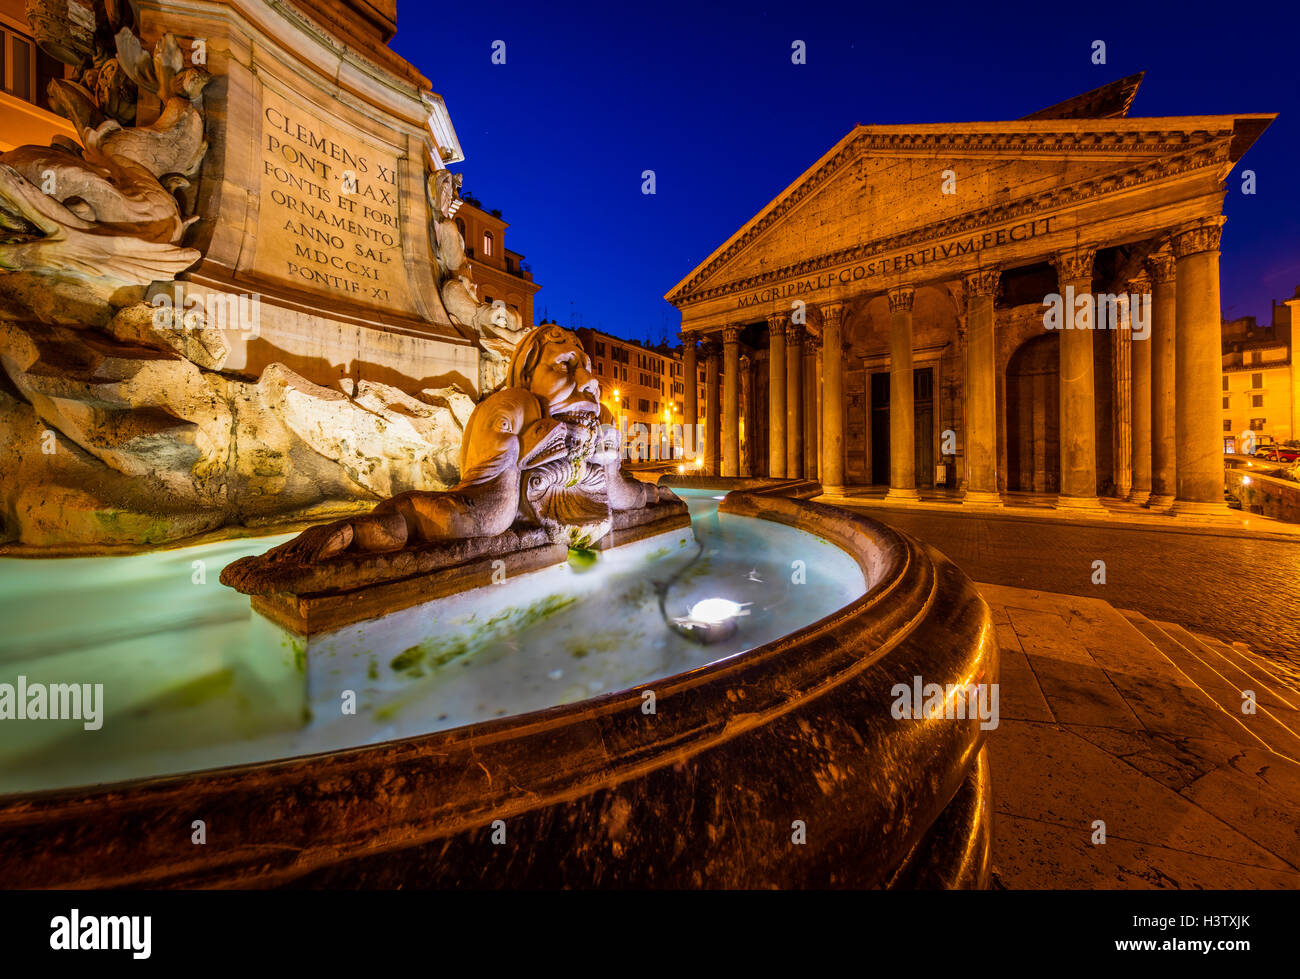 The Fontana del Pantheon fountain in front of the Pantheon in Rome, Italy. - Stock Image